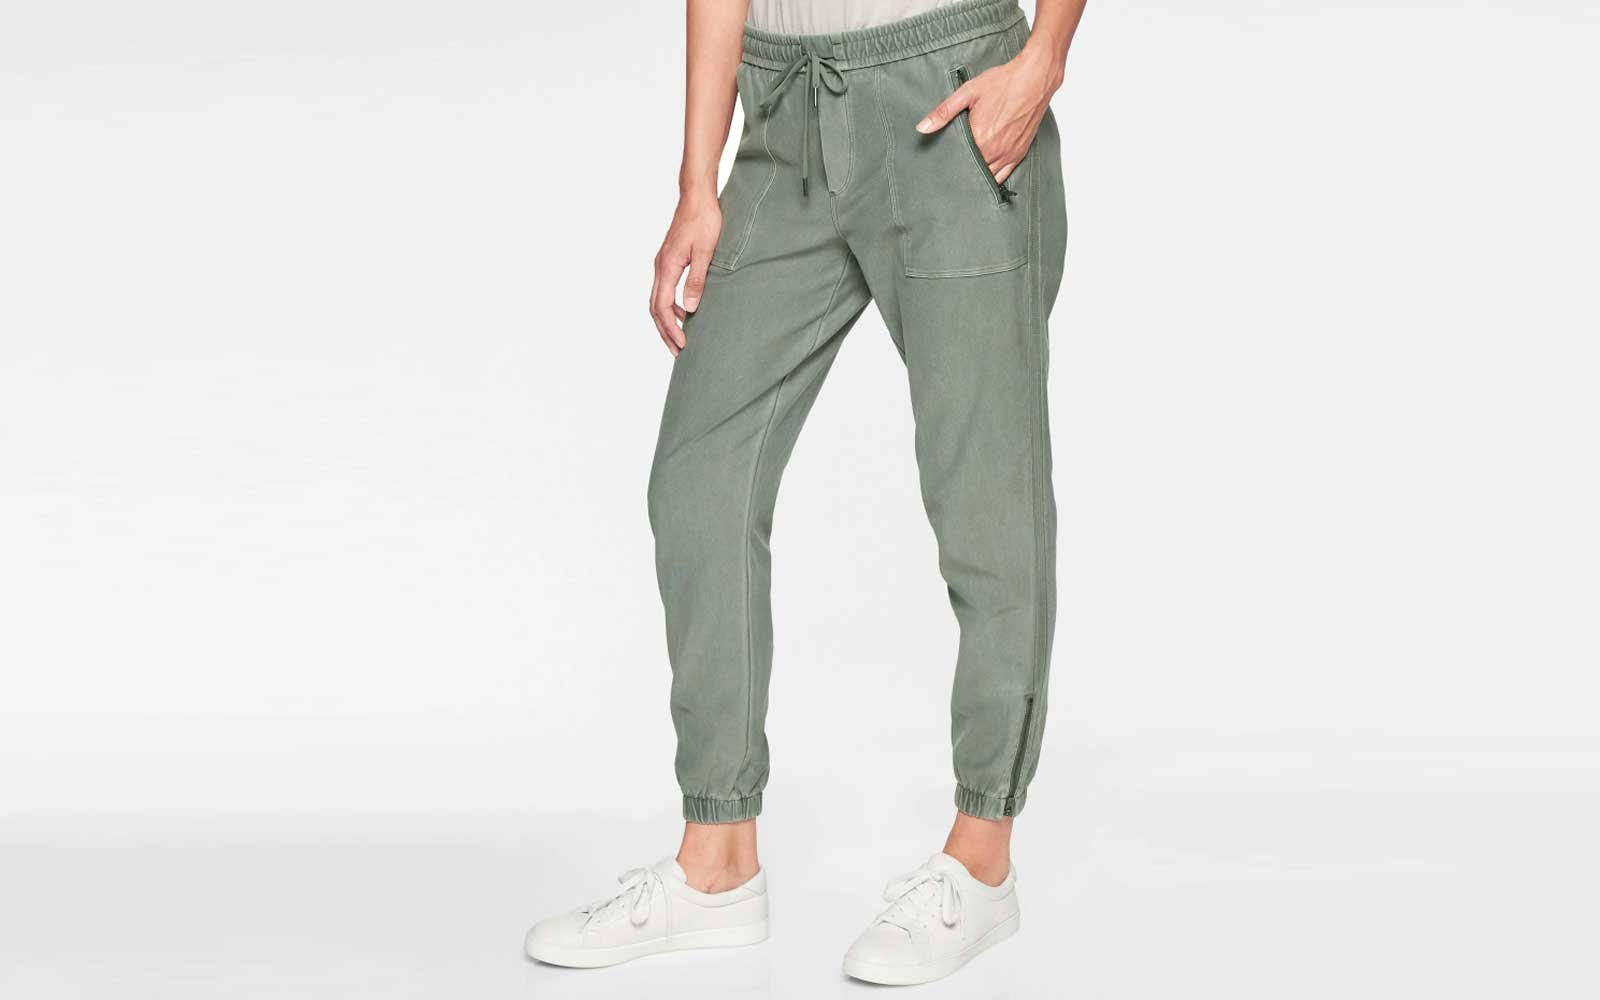 best travel pants for women athleta joggers